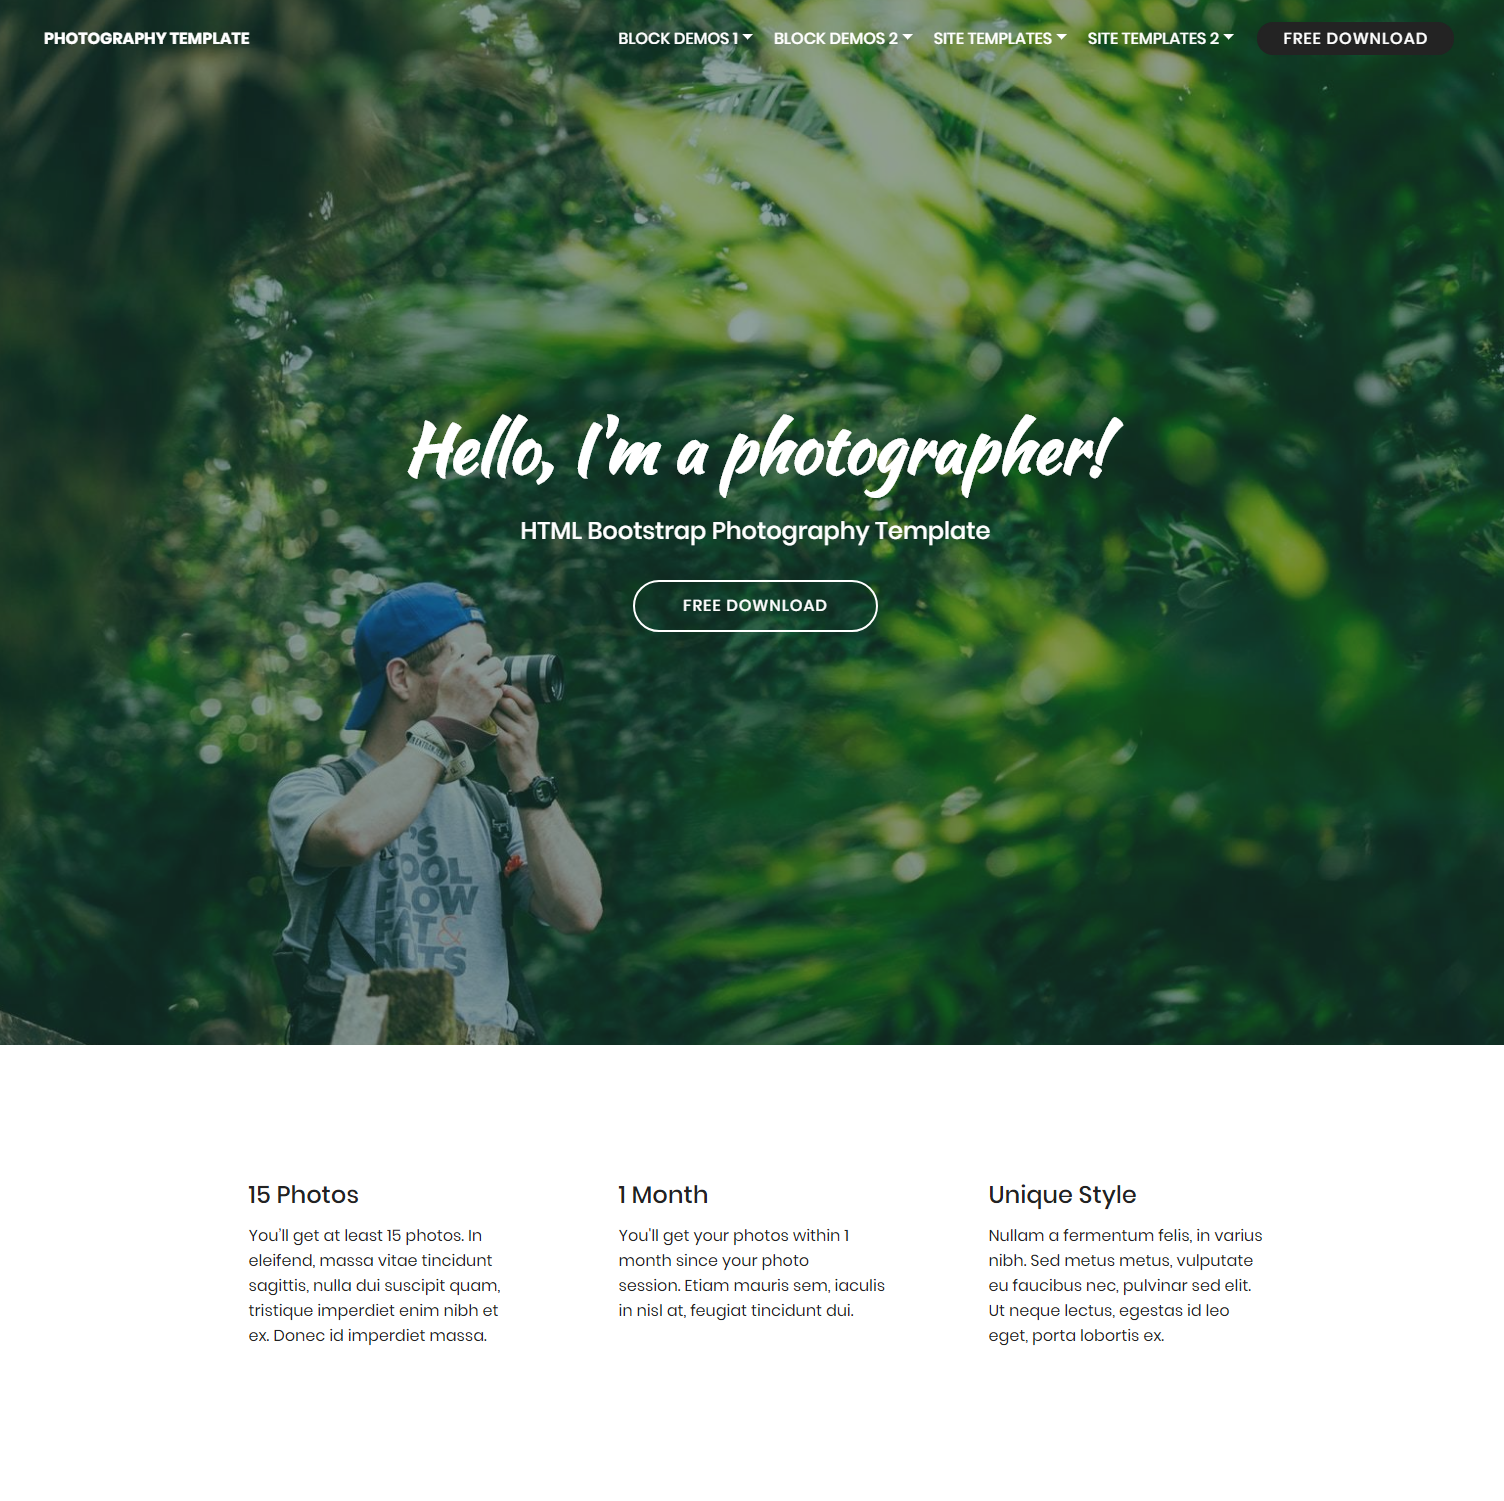 HTML Bootstrap Photography Templates